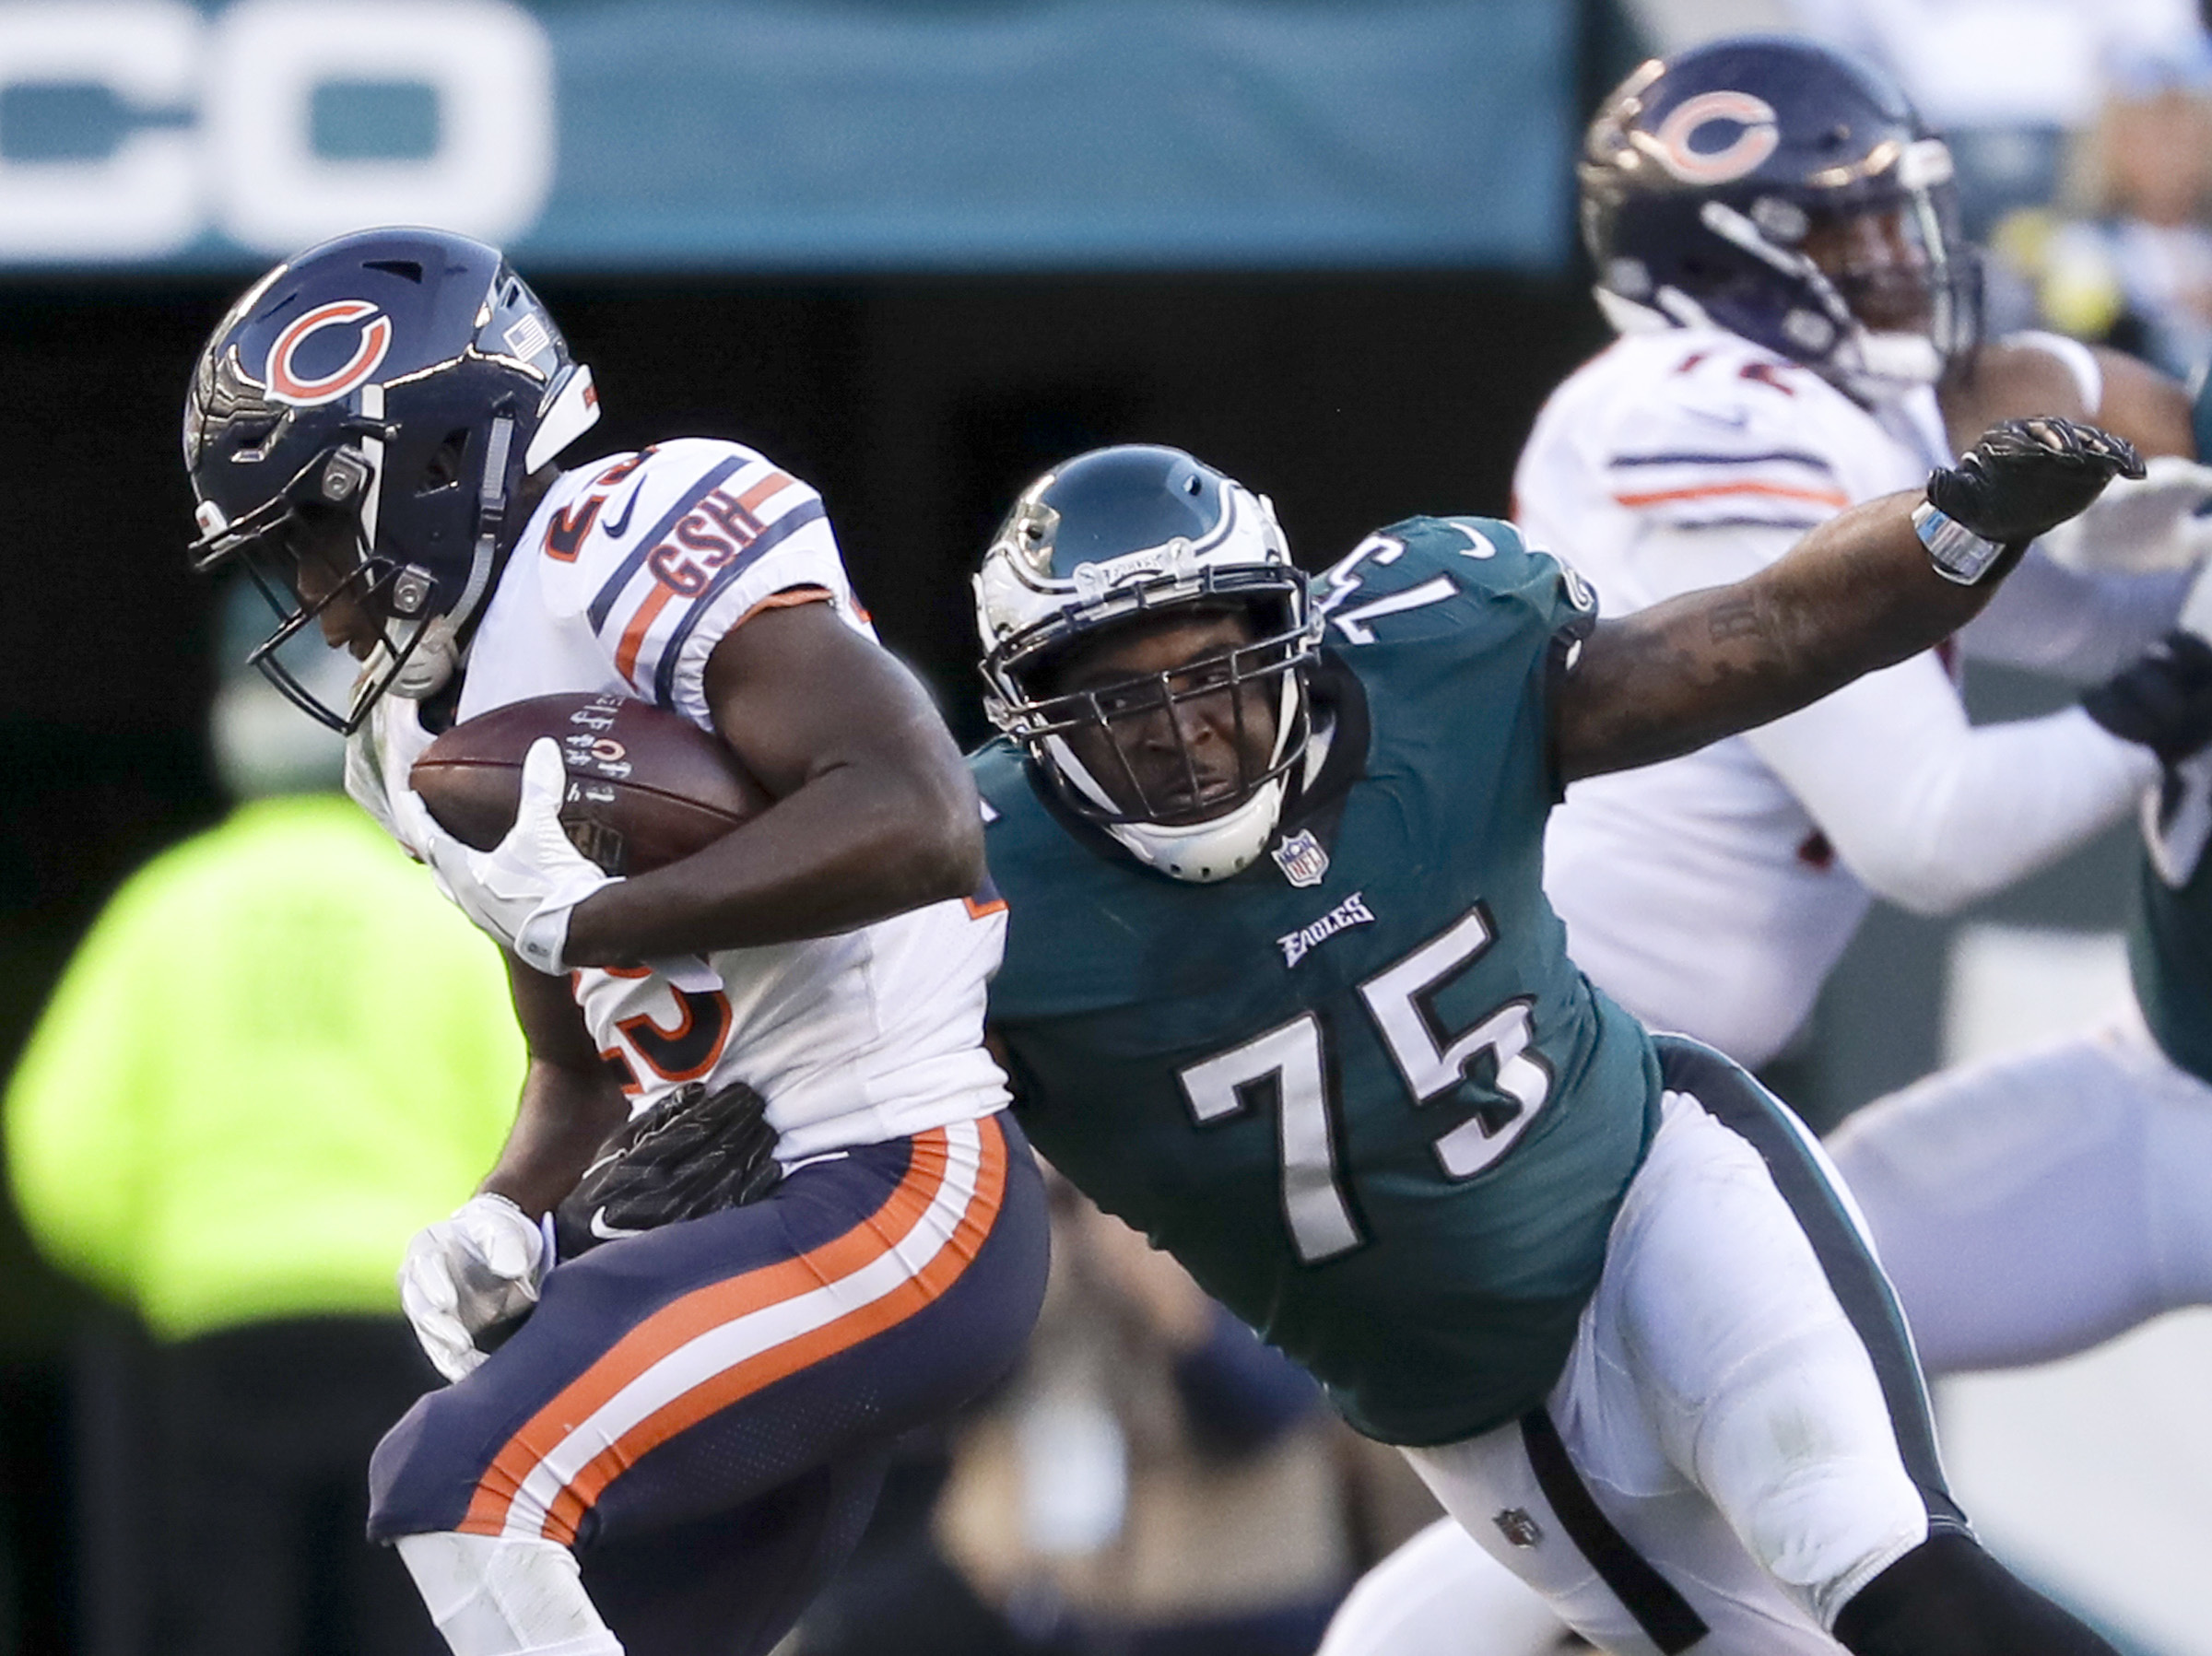 Vinny Curry (No. 75) has been part of a dominating Eagles defensive line this season.